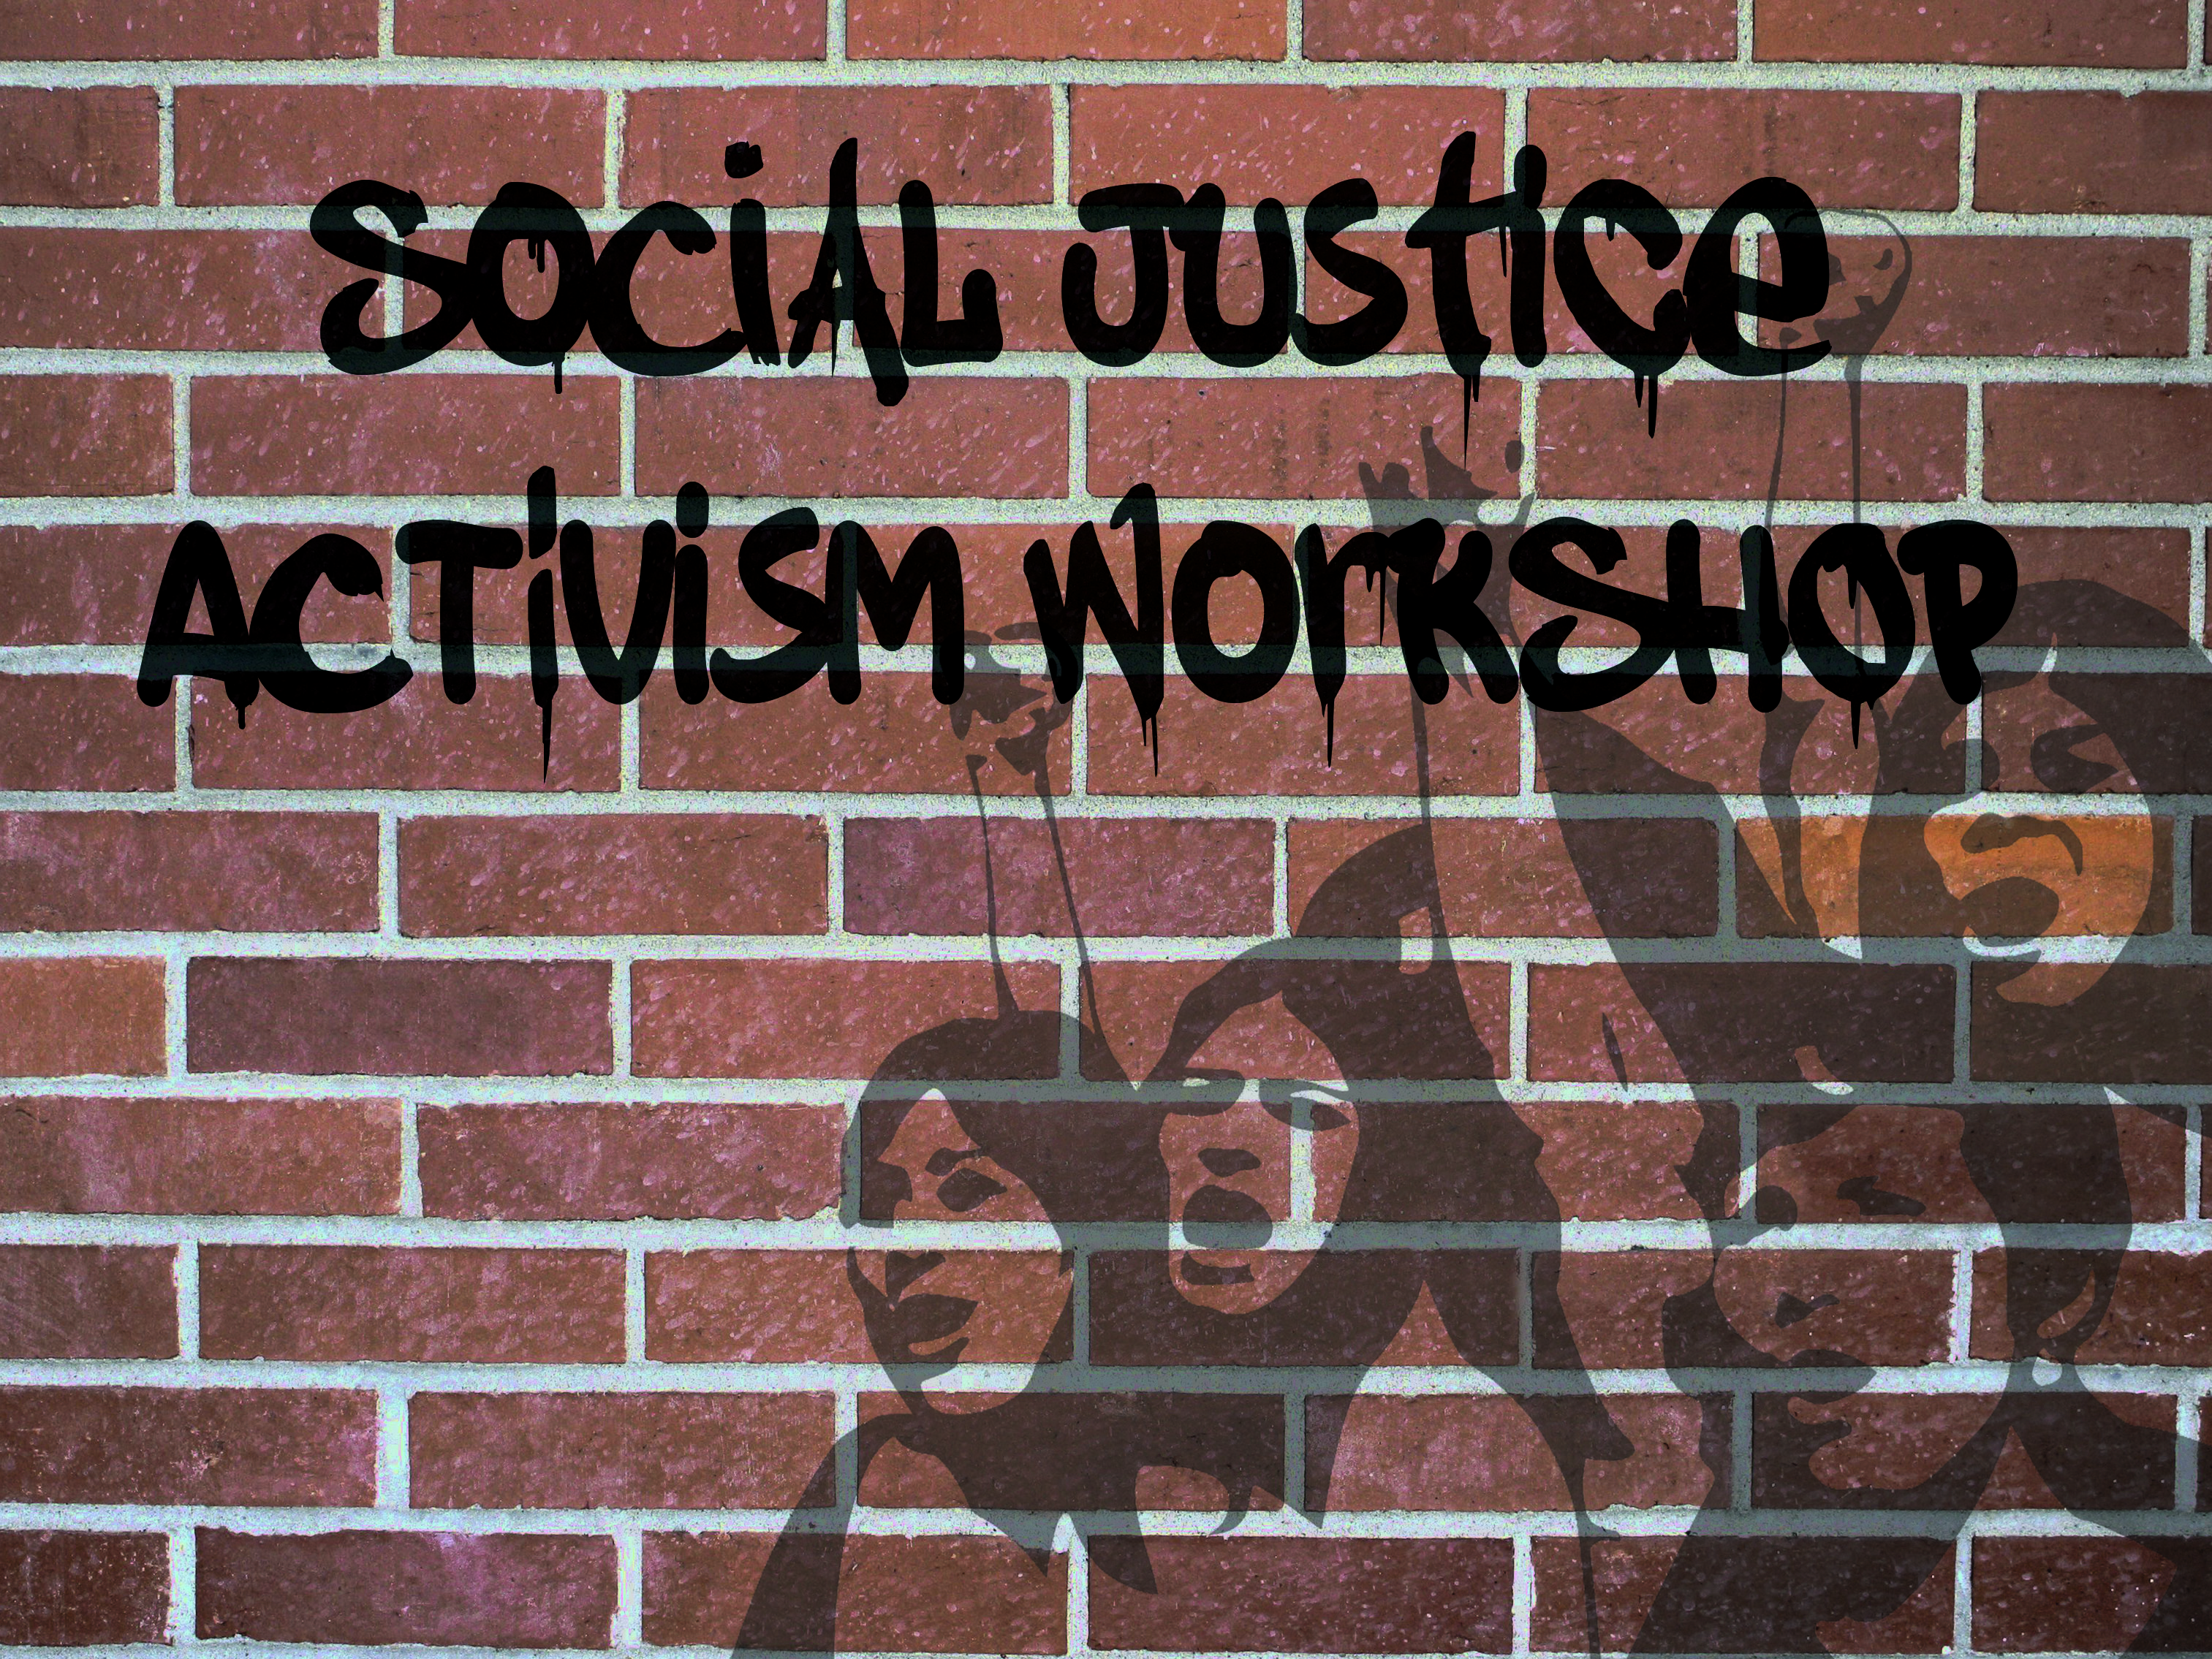 Social Justice Activism Workshop